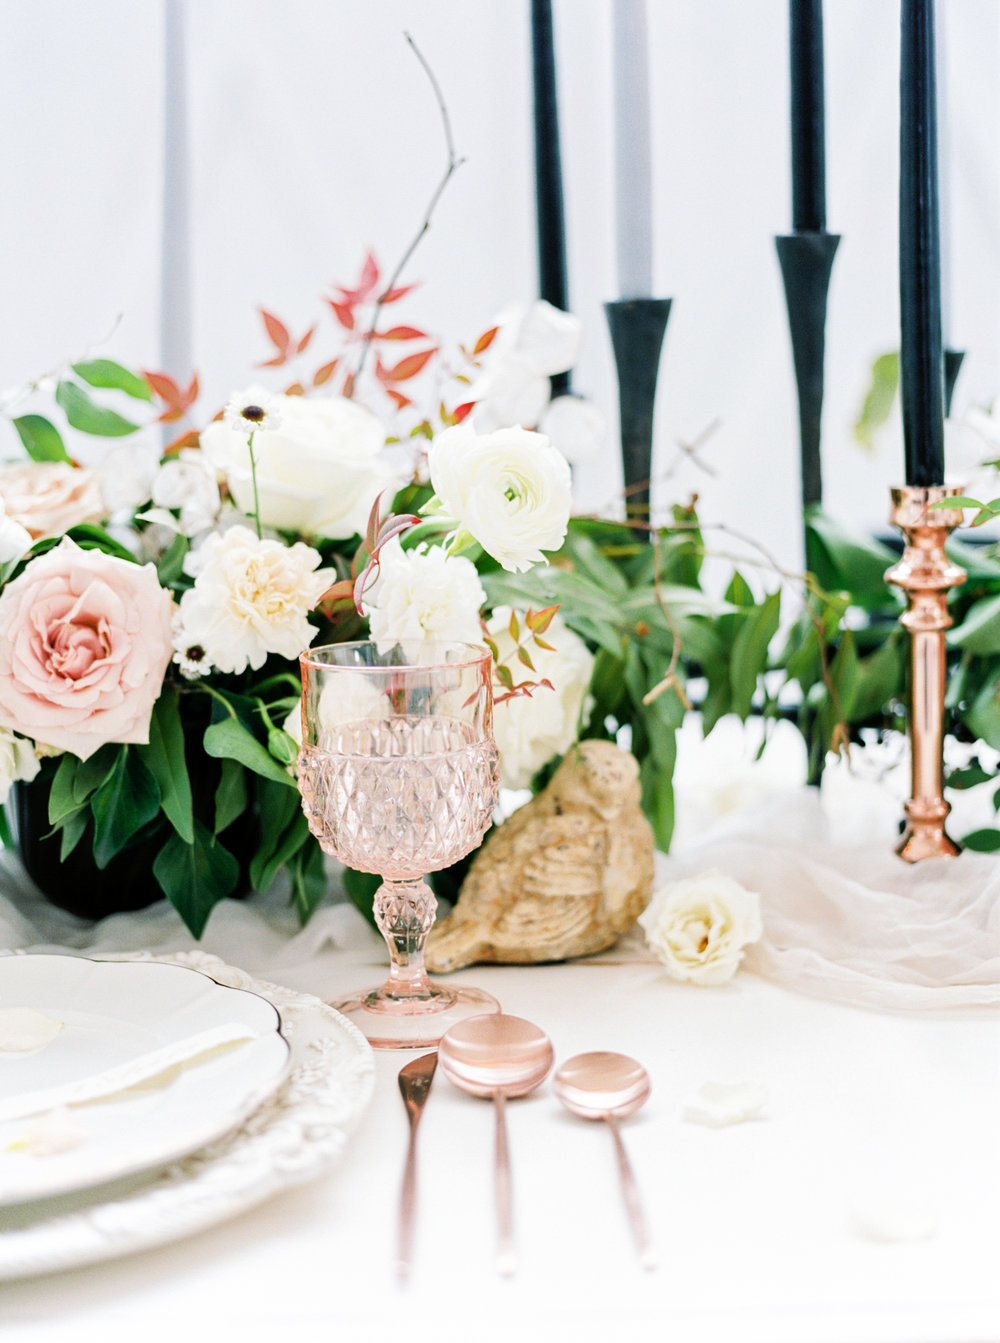 Callie Manion Photography_White Sparrow Open House_Styled Shoot_020.jpg